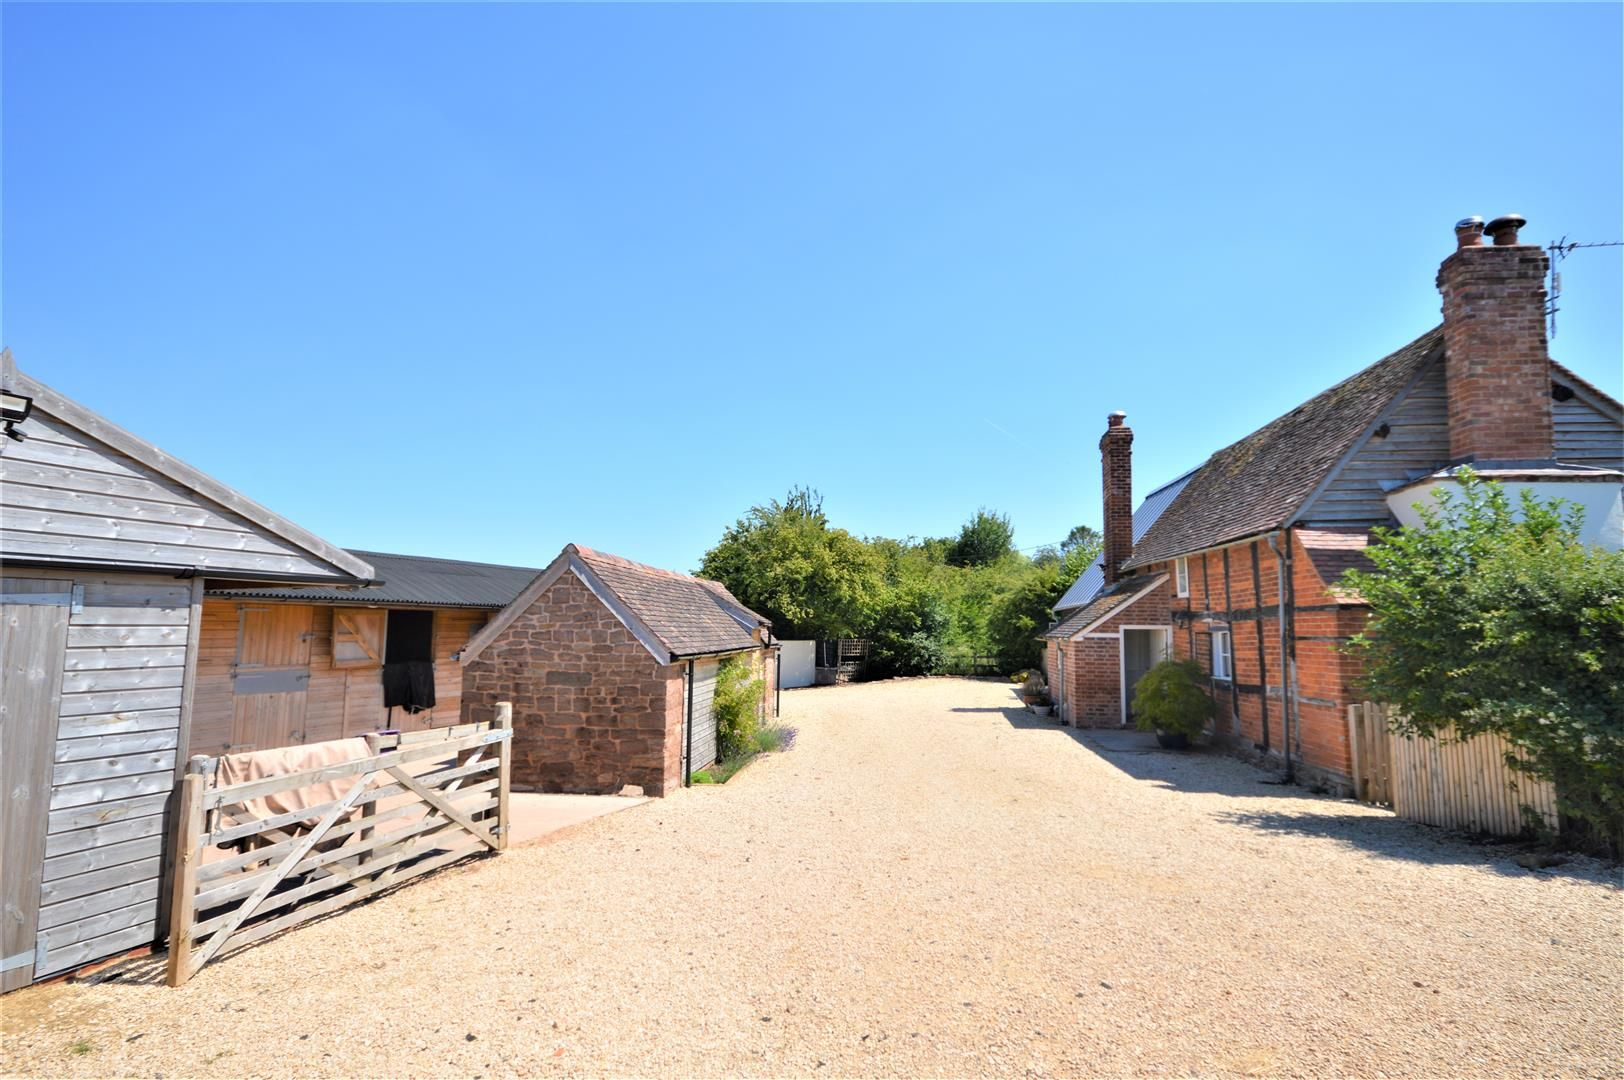 3 bed detached for sale in Canon Frome 8